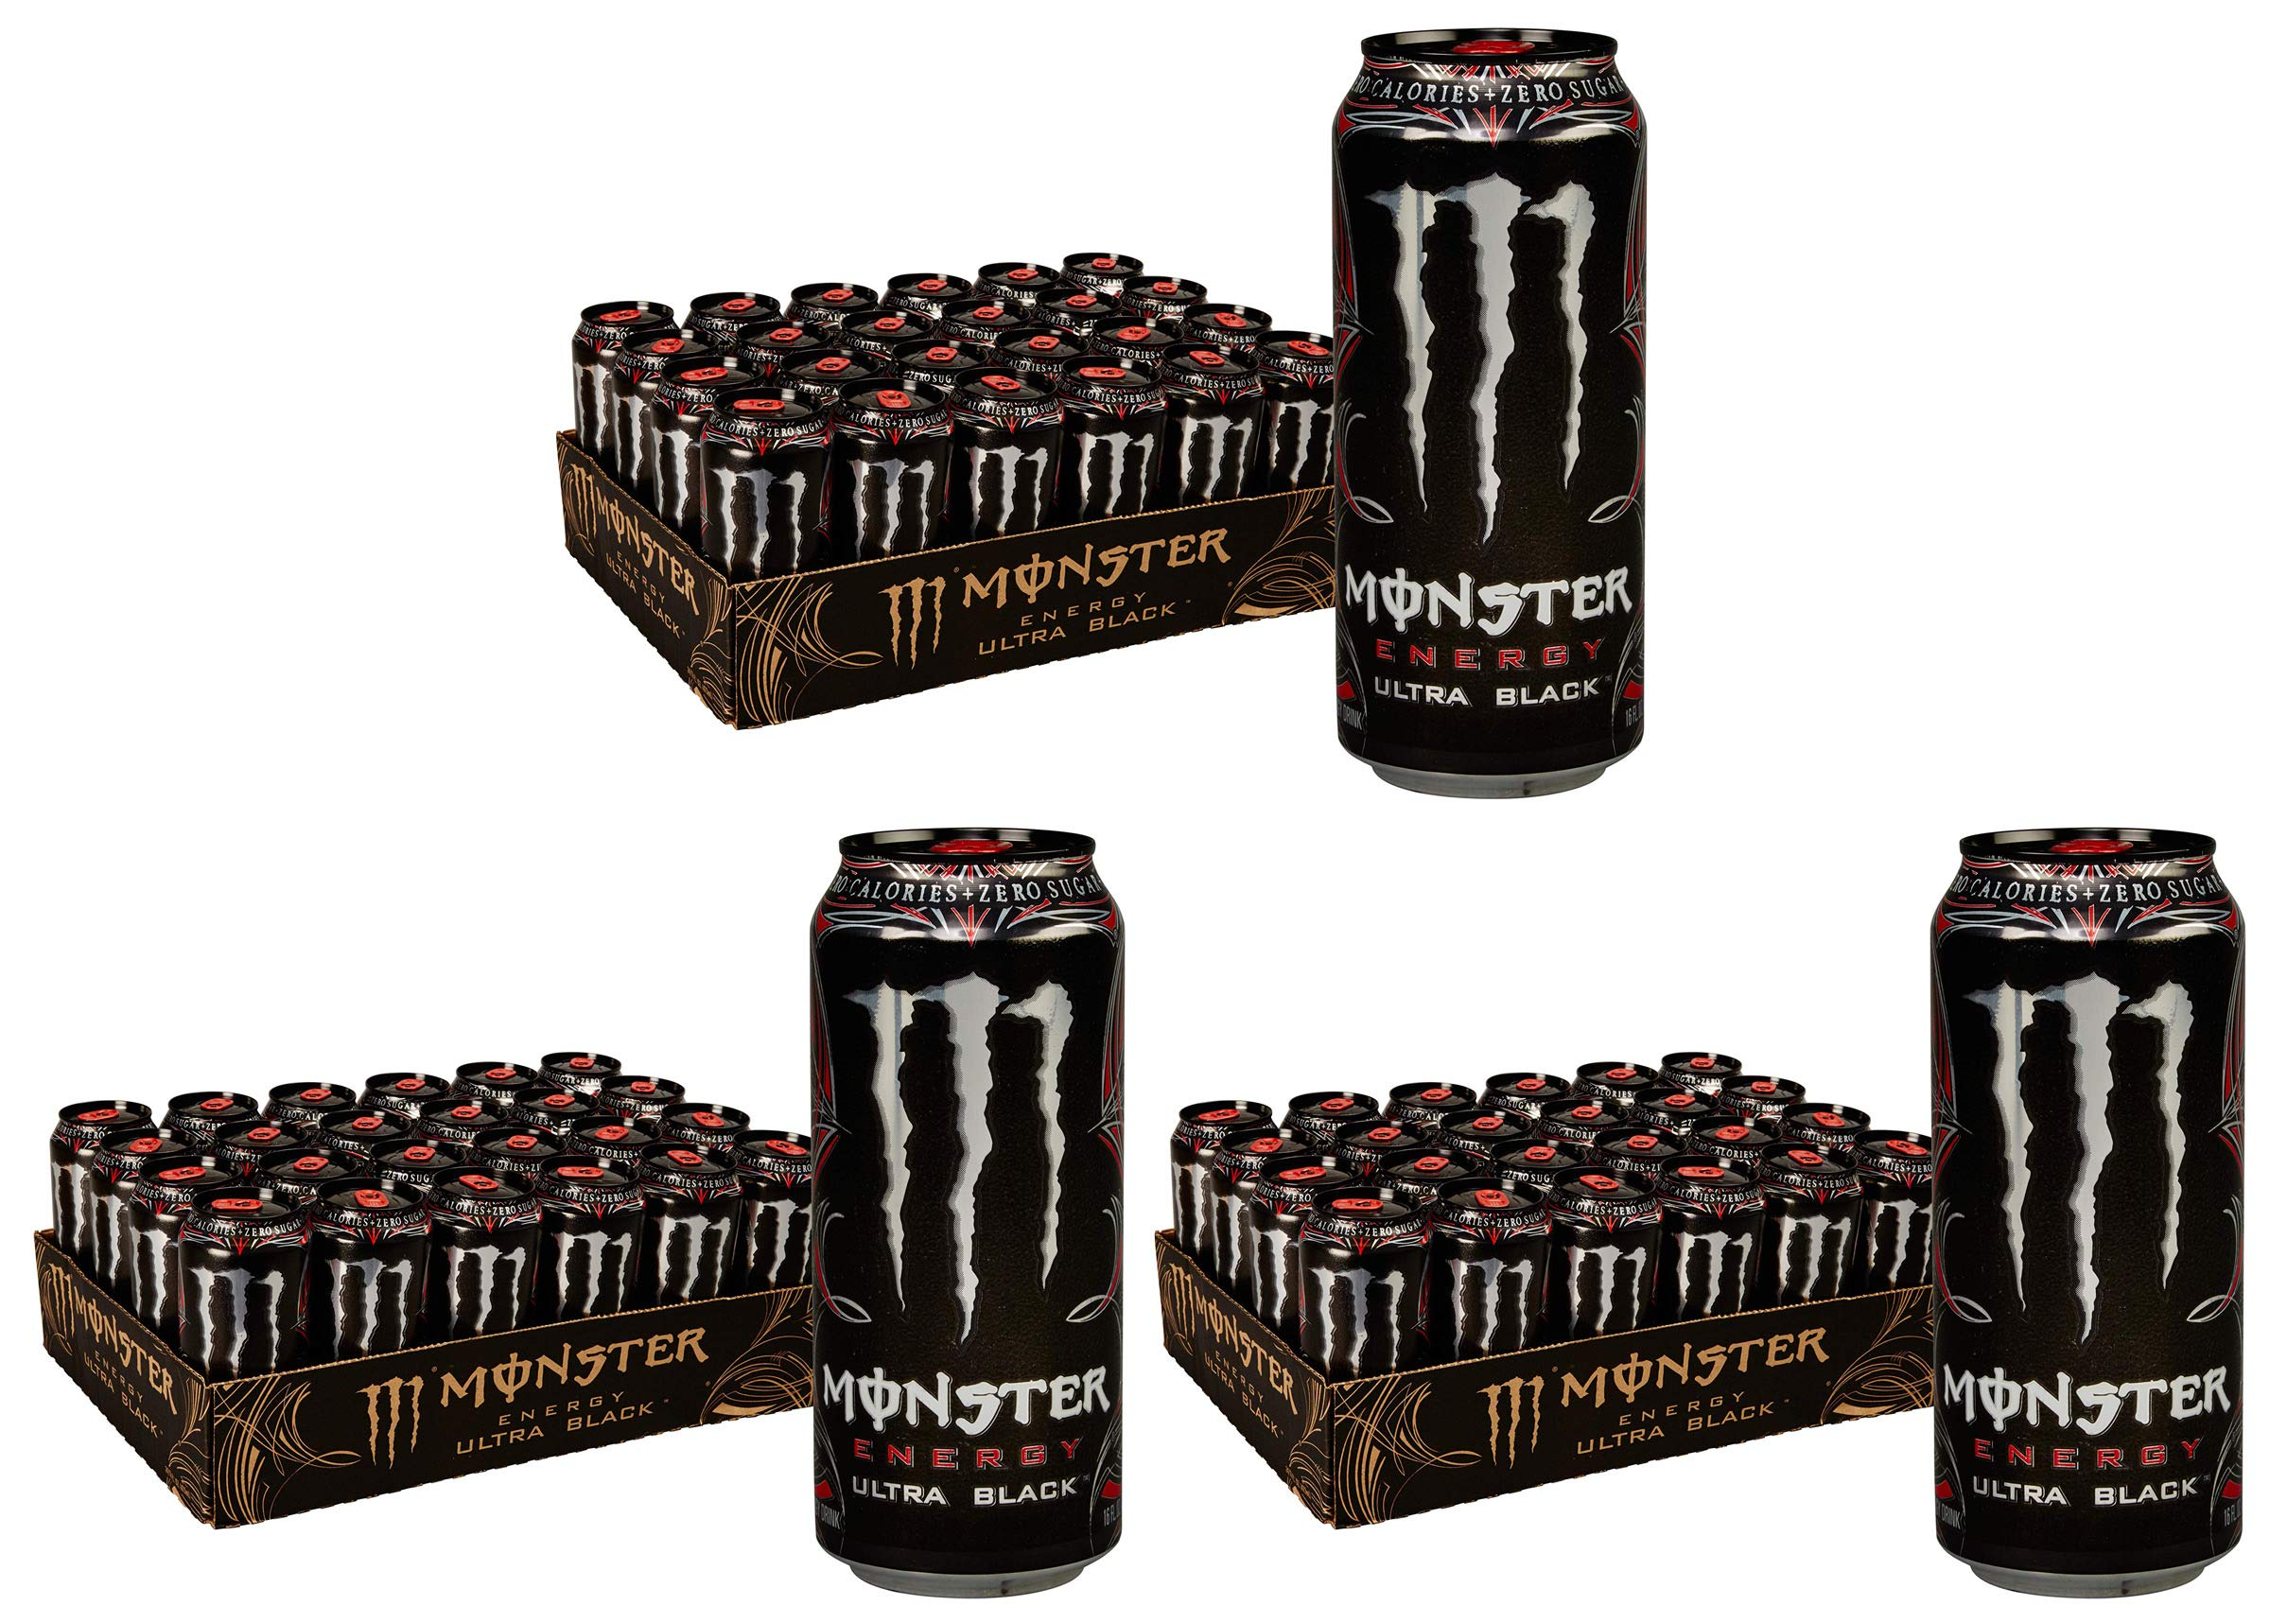 QPHEETKQ Ultra Black, Sugar Free Energy Drink, 16 Ounce, 3 Cases of 24 Cans